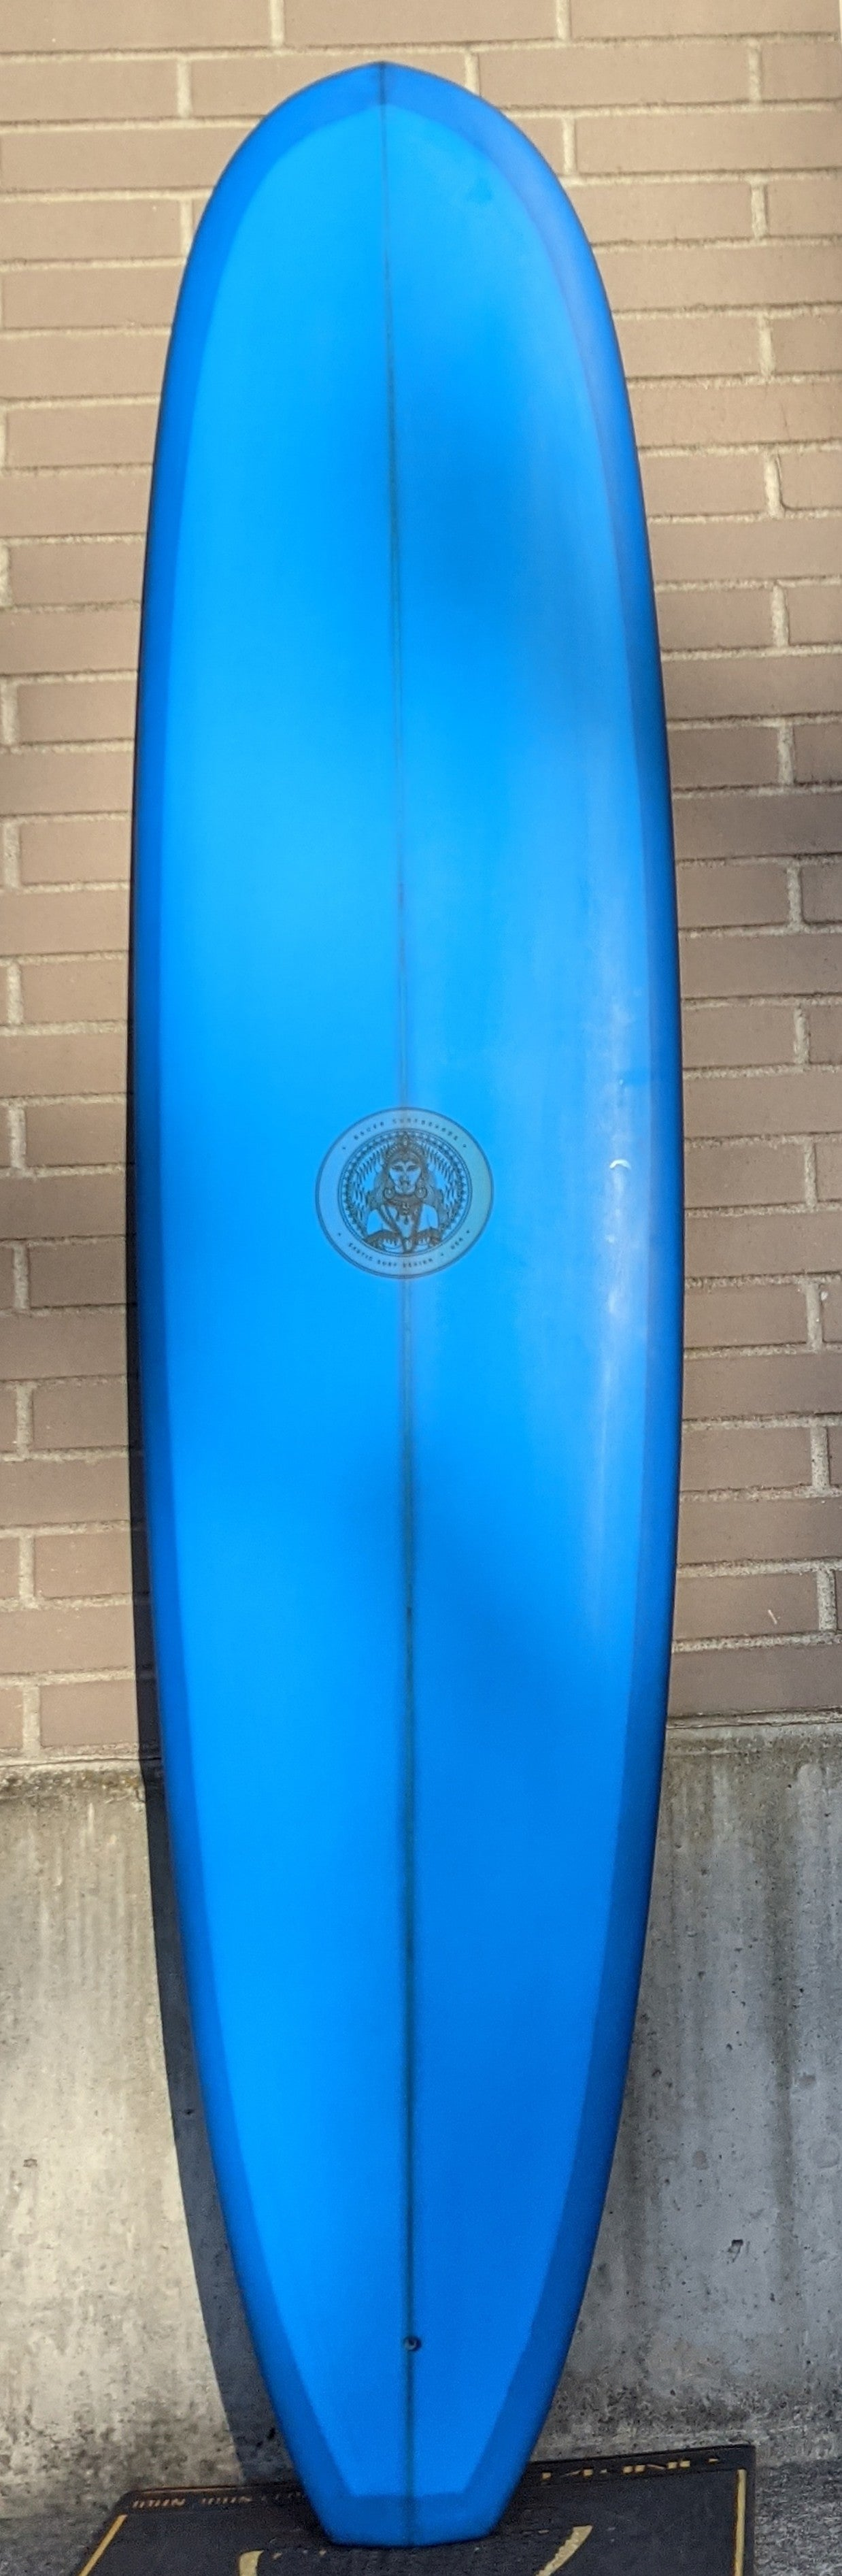 "8'4"" Bauer Surfboards MiniMal"